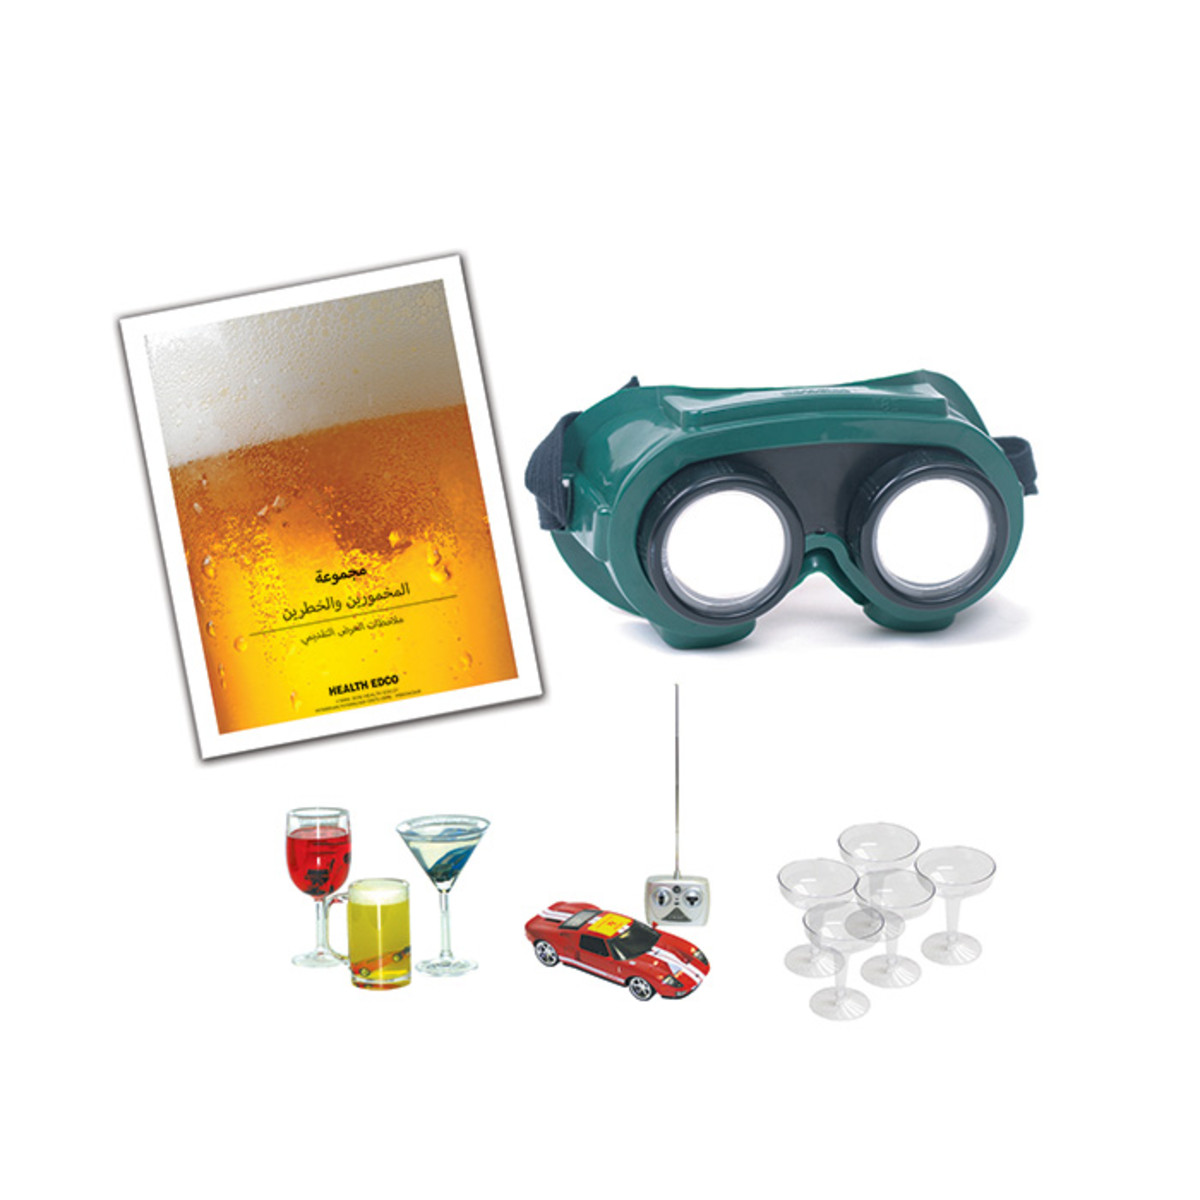 Health Edco; health education; alcohol awareness products; drunk driving; drink-driving; blood alcohol concentration; intoxicated driving; DUI; DWI; BAC; Arabic translation; alcohol goggles